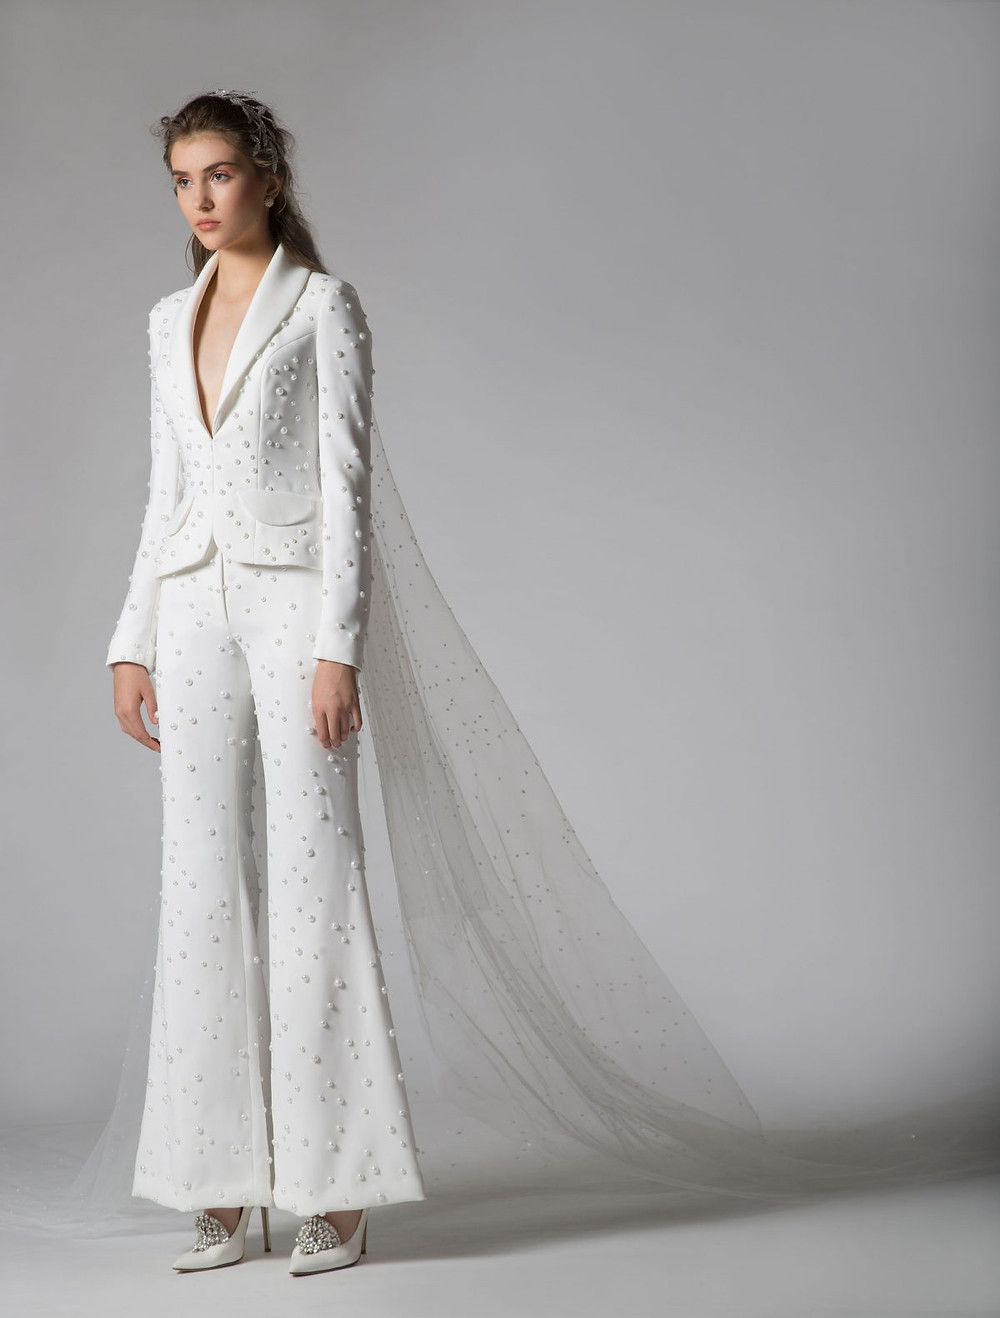 Weddinspired | 30+ Trendy Wedding Jumpsuits | Georges Hobeika from the Bridal 19-20 collection